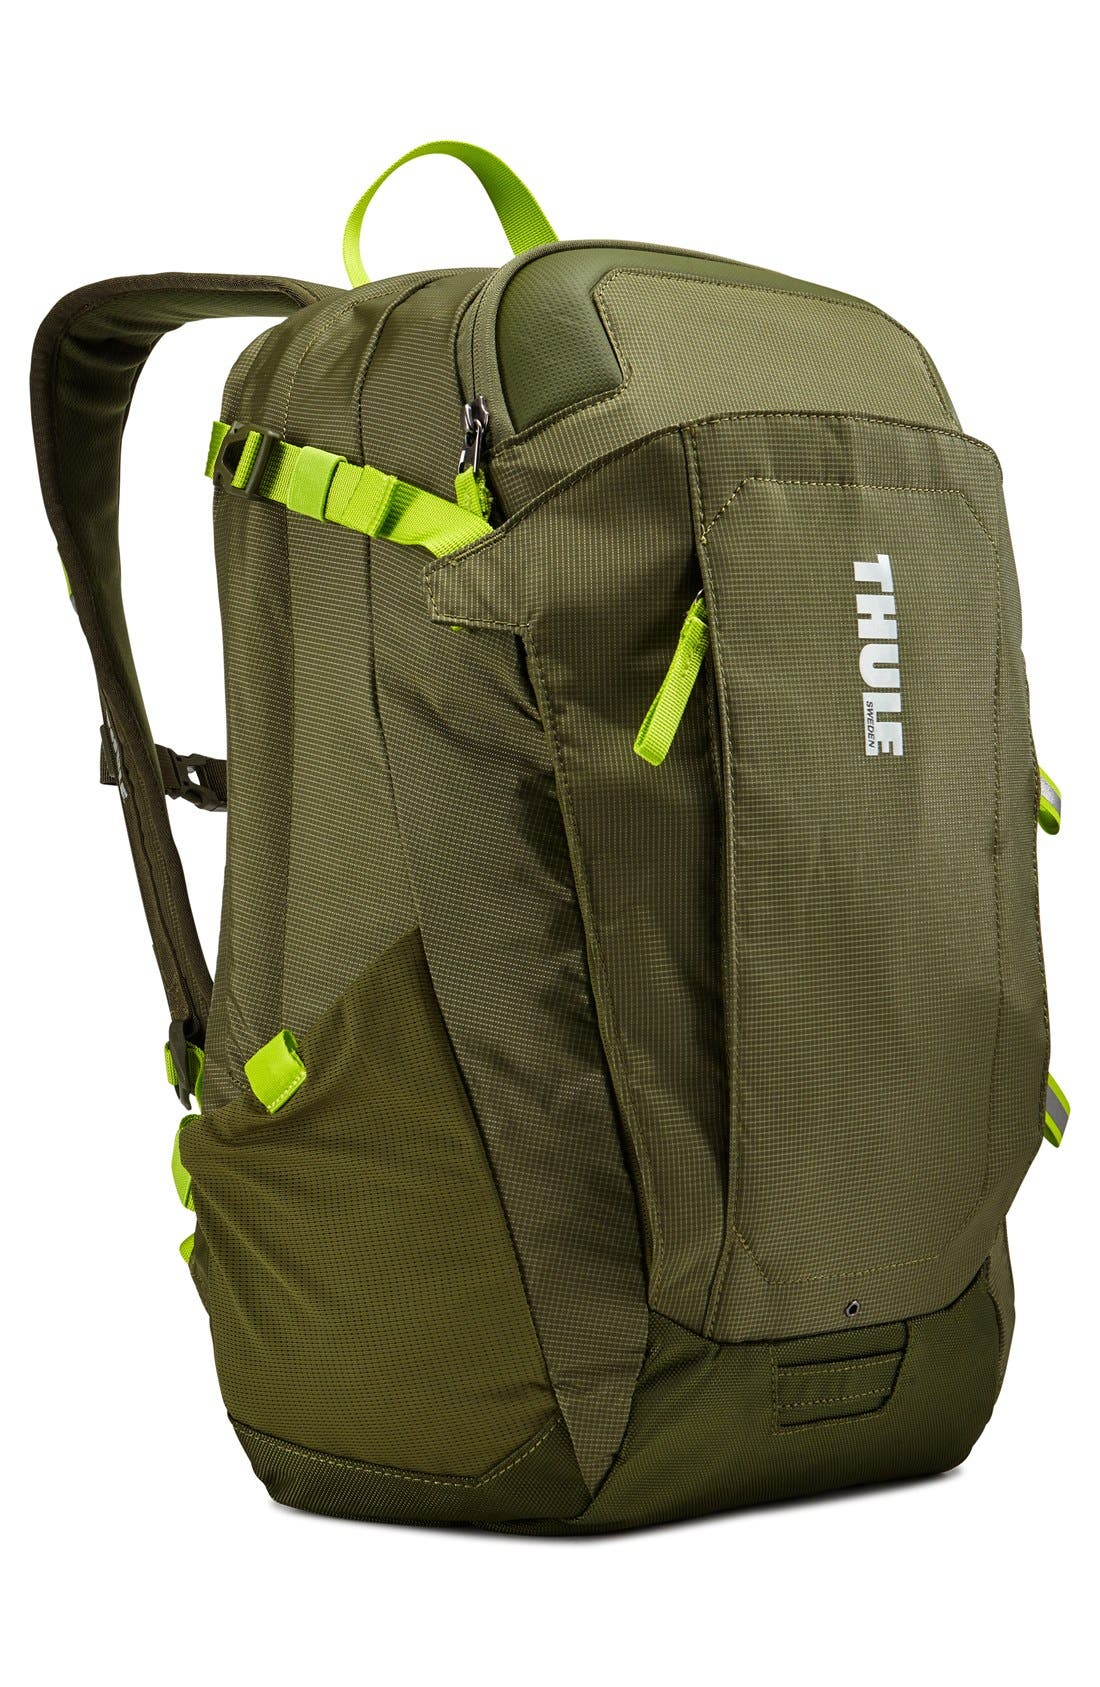 EnRoute Triumph 21-Liter Backpack,                             Alternate thumbnail 4, color,                             340